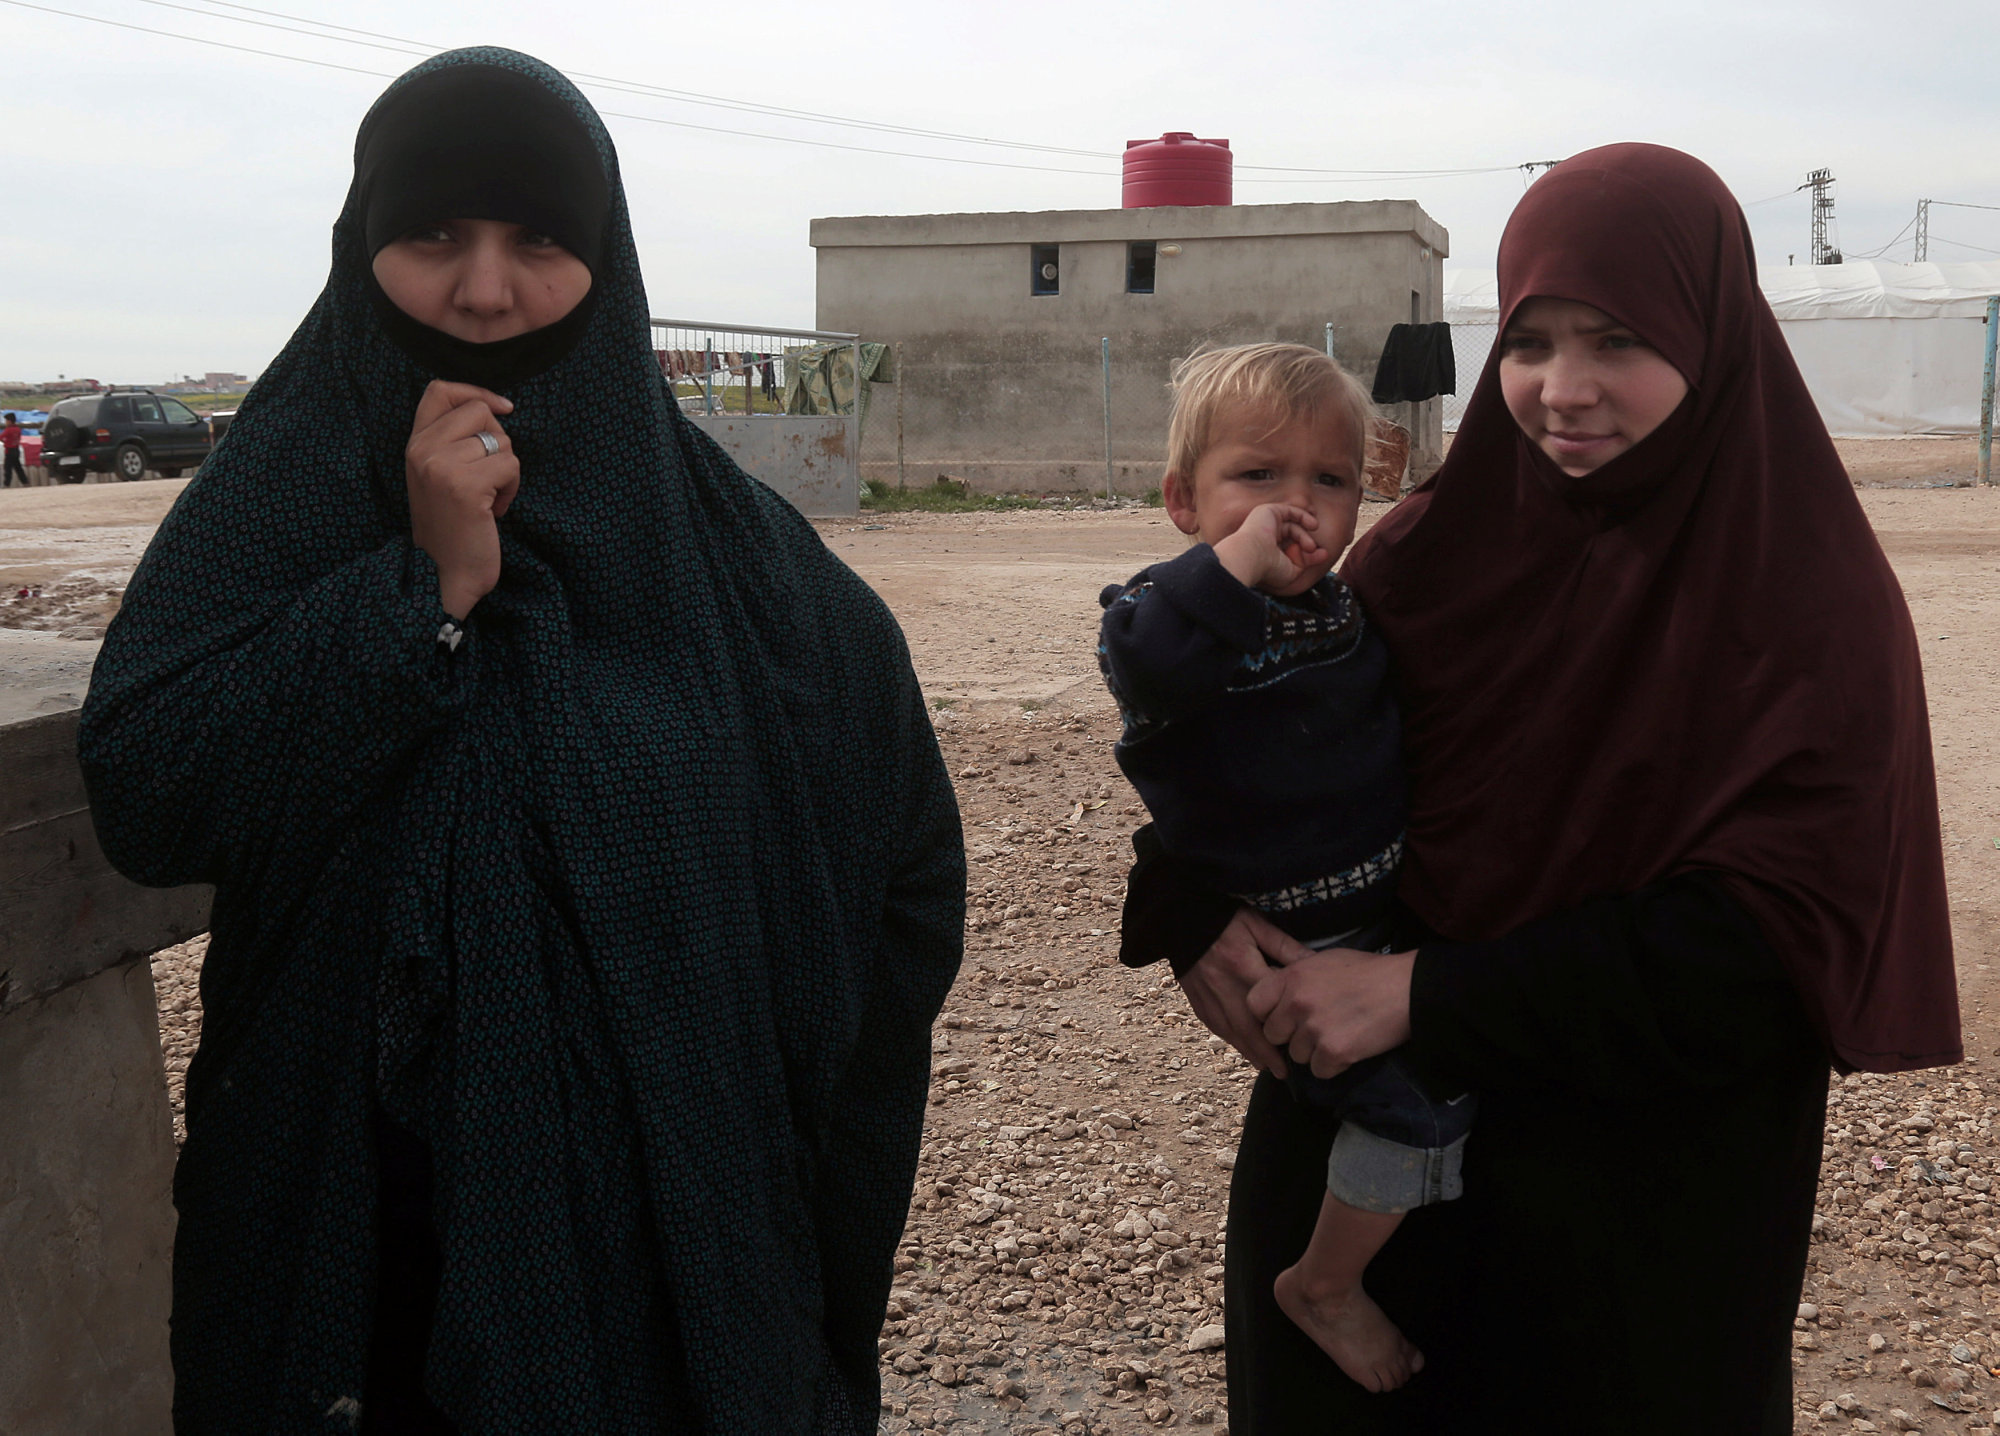 Belgian women Tatiana Wielandt and Bouchra Abouallal, both 26, who joined Islamic State in Syria are pictured in Ain Issa, Syria, Sunday.   REUTERS